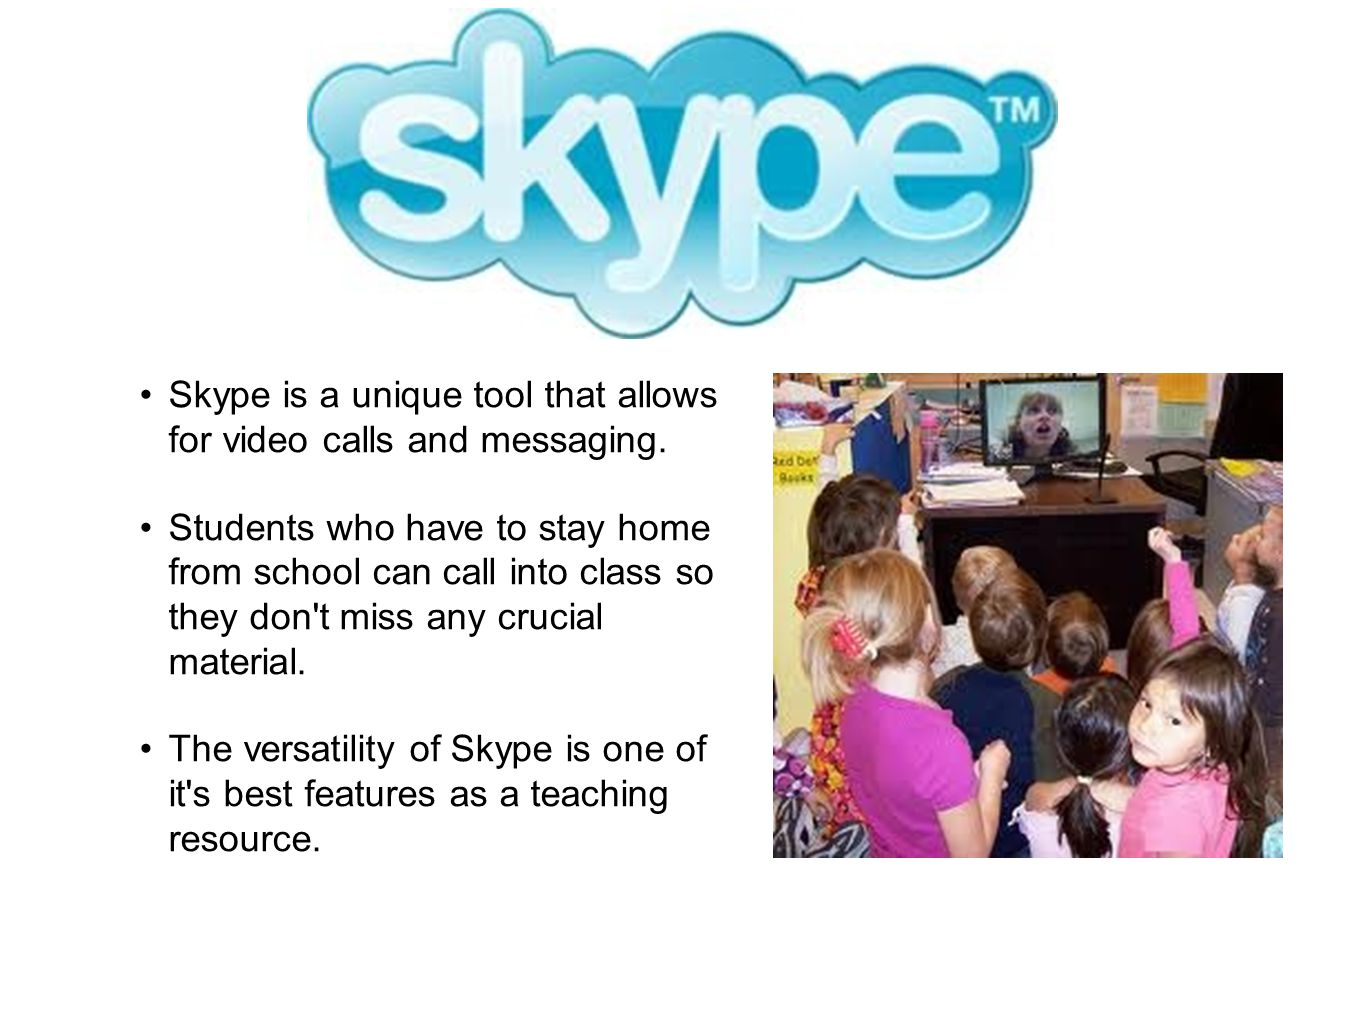 Skype is a unique tool that allows for video calls and messaging.